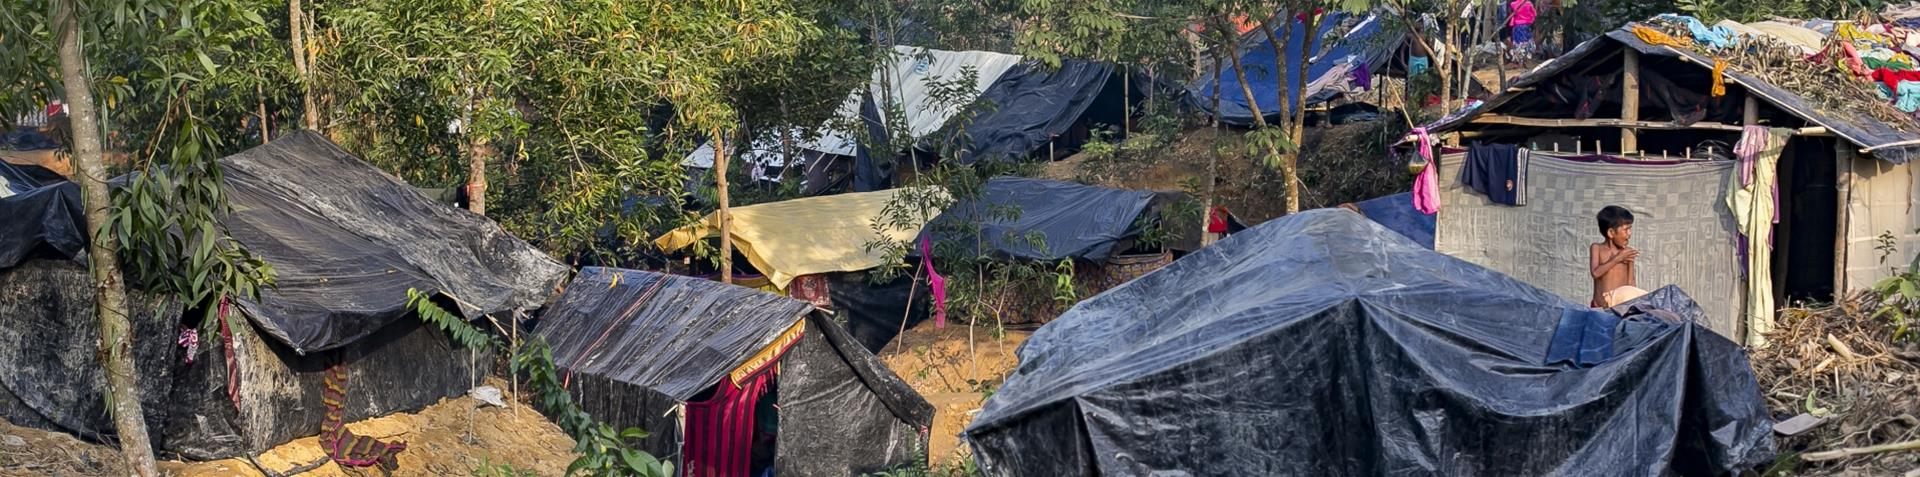 More than 400,000 Rohingya have fled to Bangladesh in recent weeks [Showkat Shafi/Al Jazeera]